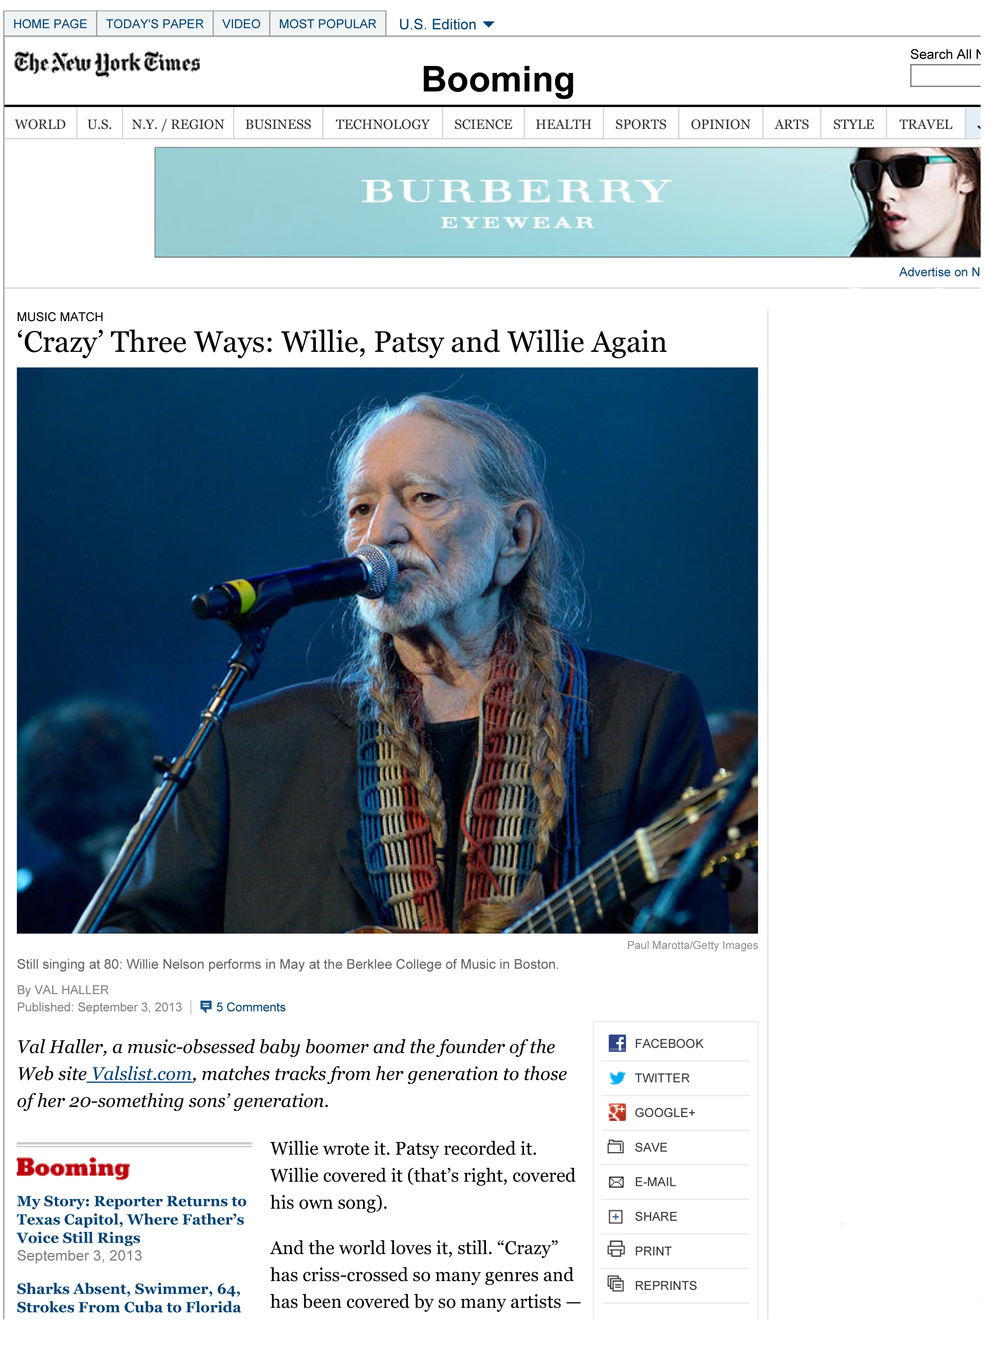 Willie Nelson Berklee NYTimes.jpg